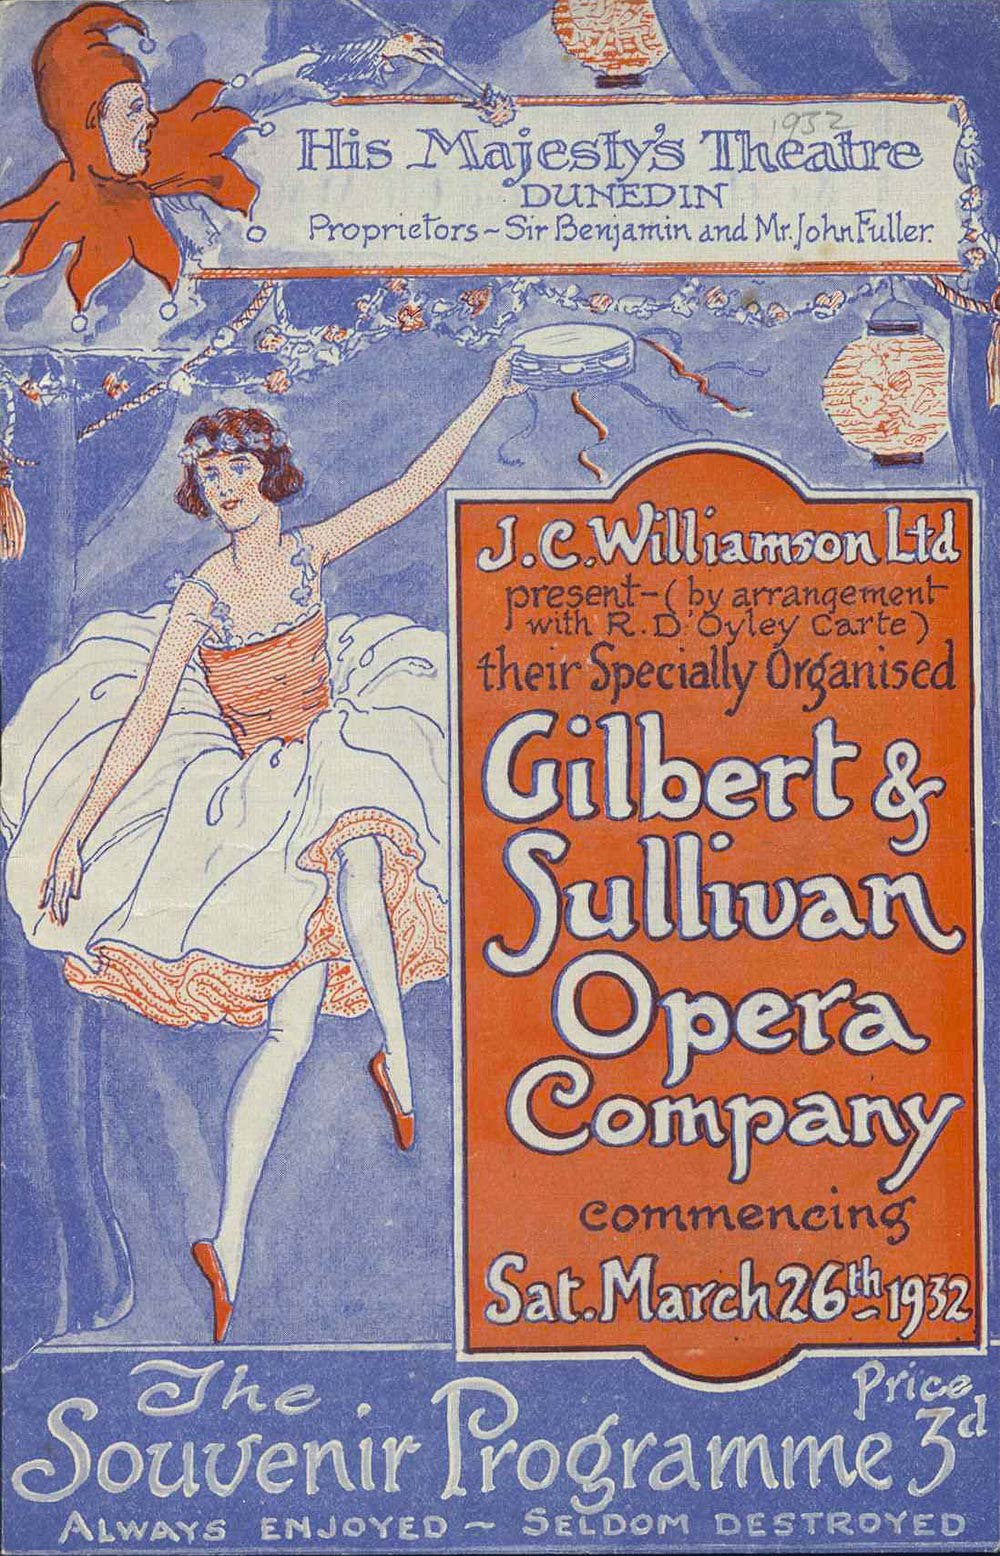 <em>Iolanthe</em>. Libretto by W.S. Gilbert; music by Arthur Sullivan. (J.C. Williamson's Gilbert & Sullivan Opera Company). His Majesty's Theatre, Dunedin, Mar. 26, 1932.